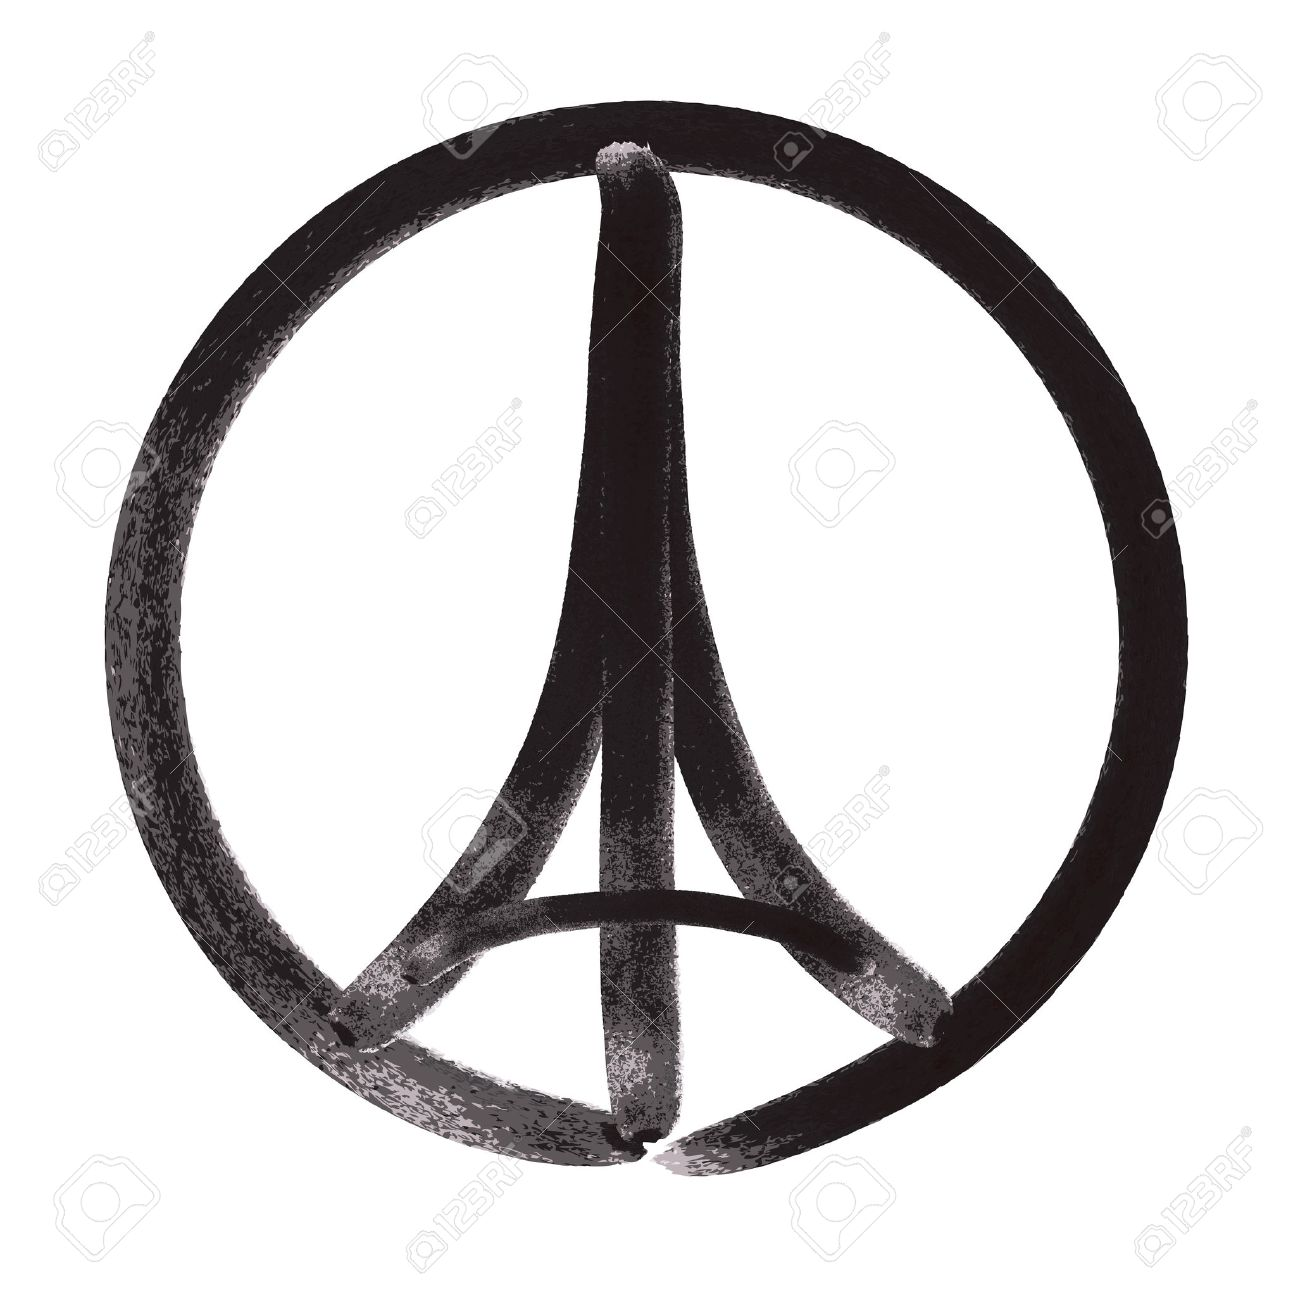 Tribute to all victims of paris terrorist attact illustration tribute to all victims of paris terrorist attact illustration made by marker brush of a symbol biocorpaavc Gallery